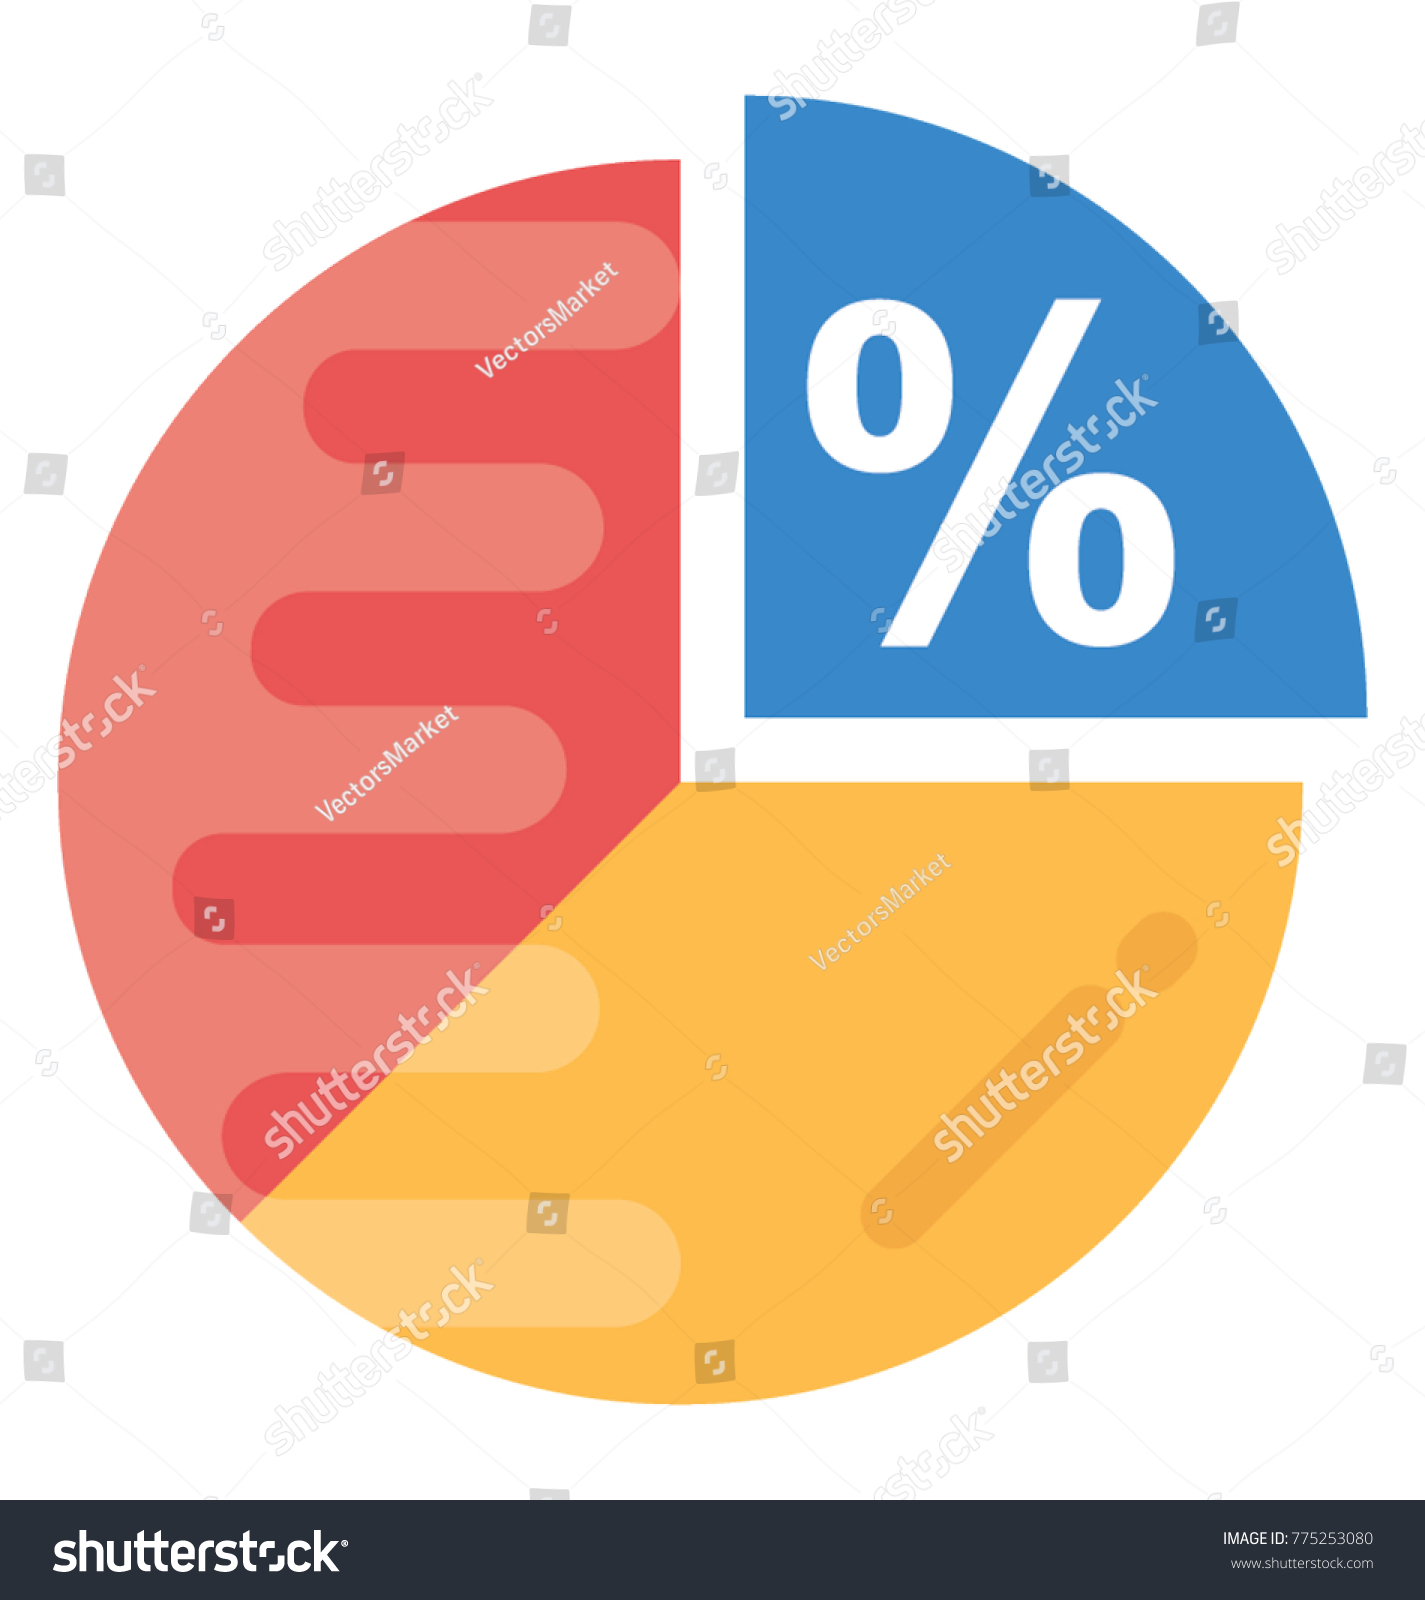 Infographic percentage pie chart icon flat stock vector 775253080 infographic percentage pie chart icon in flat style nvjuhfo Image collections